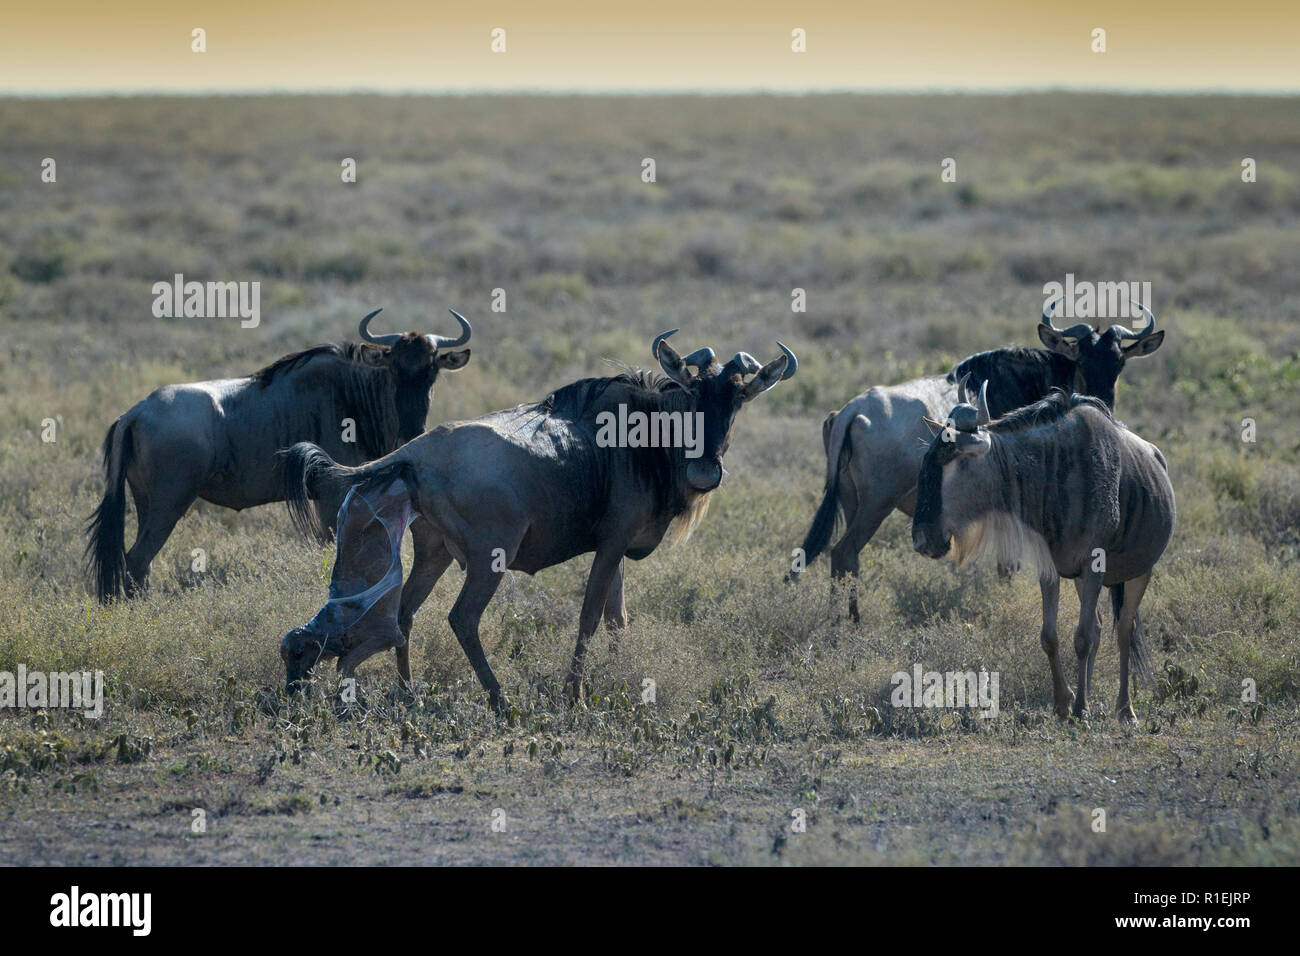 Blue Wildebeest (Connochaetes taurinus) mother giving birth to new born baby in the herd on savanna, Ngorongoro conservation area, Tanzania. - Stock Image